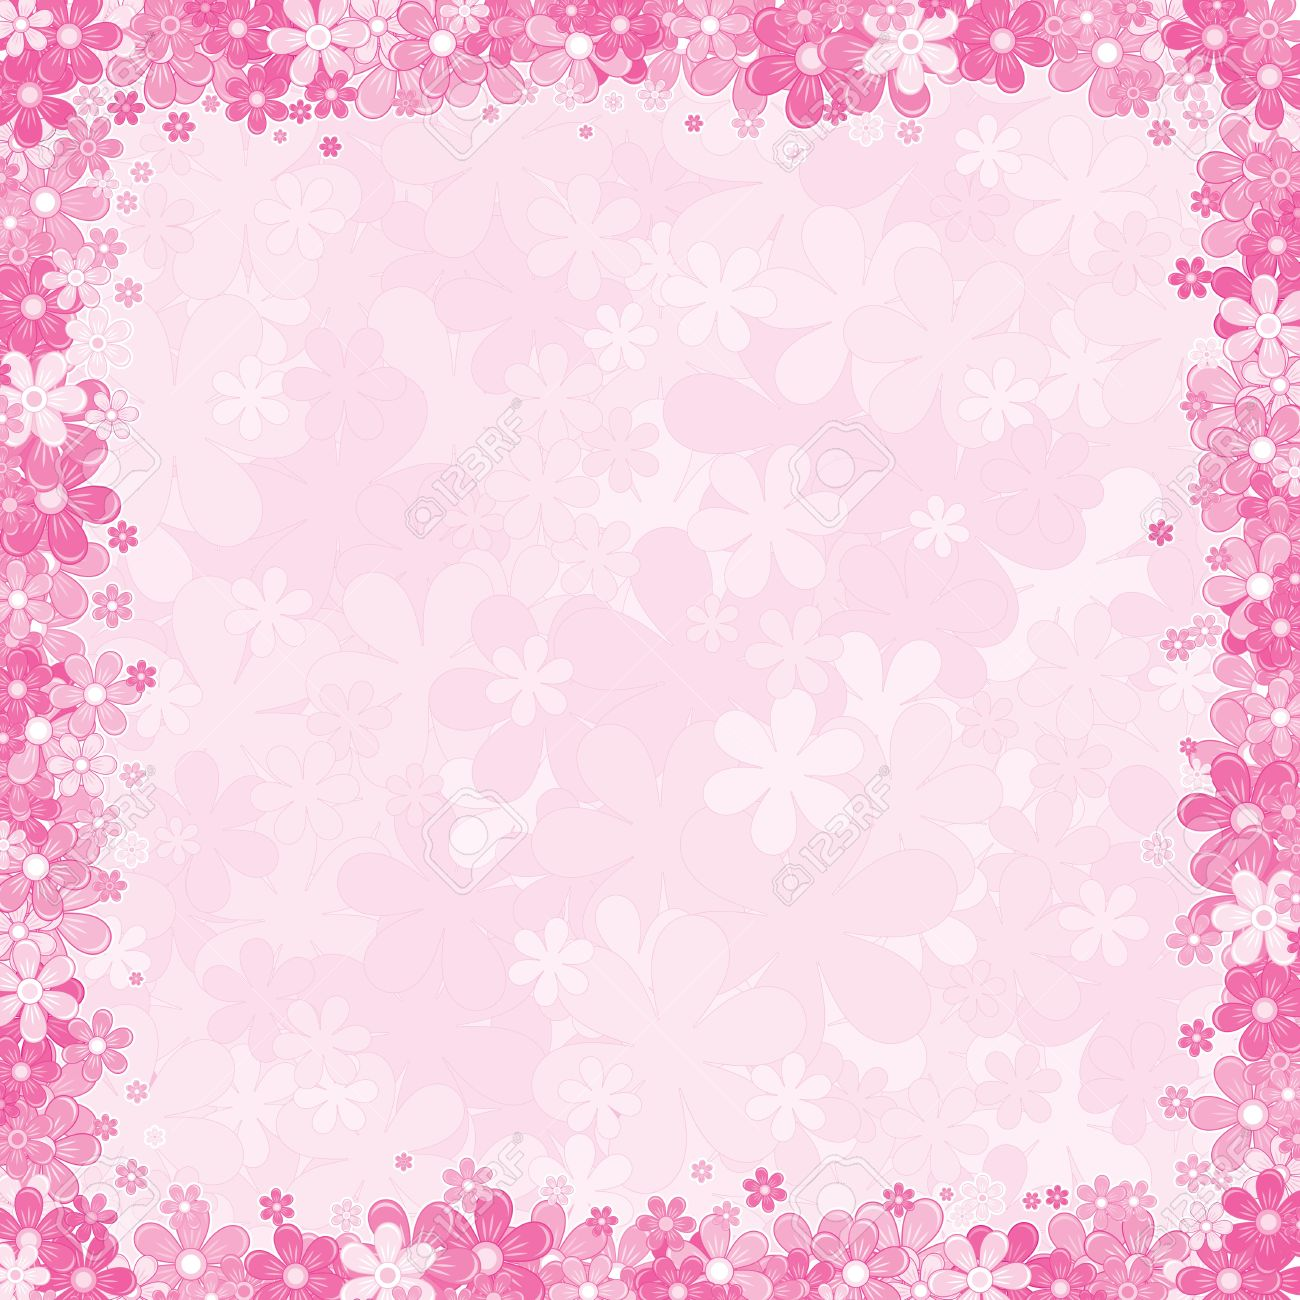 Pink flower background designs amazing wallpapers soft pink fl background vector template for your text or image source from this mightylinksfo